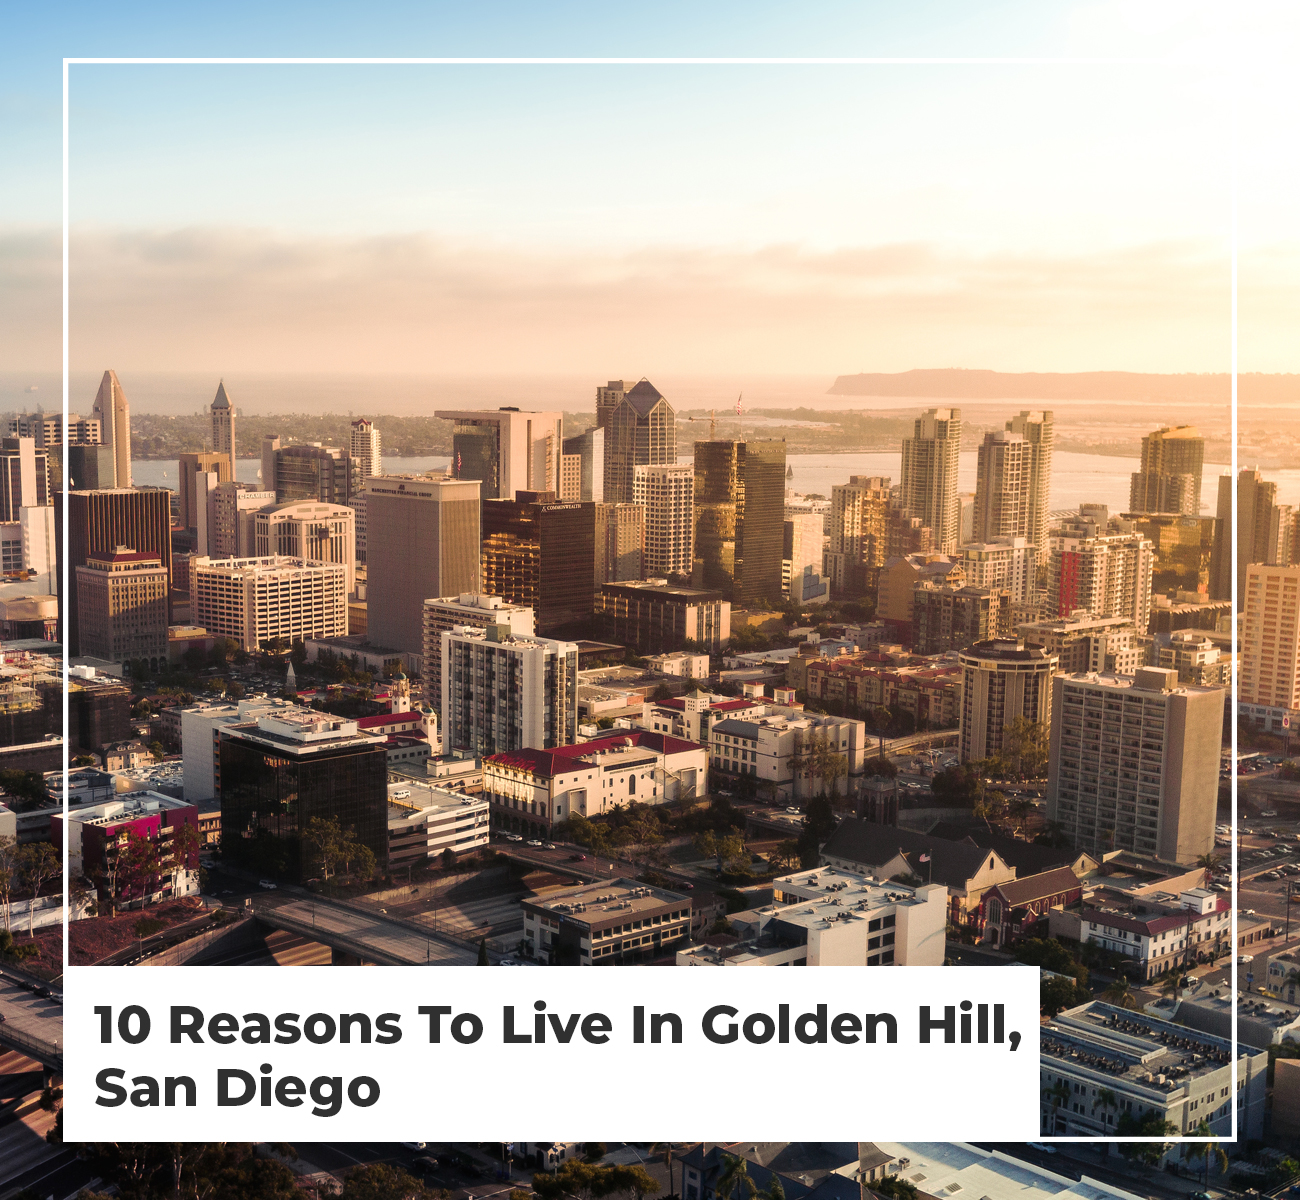 10 Reasons To Live In Golden Hill, San Diego